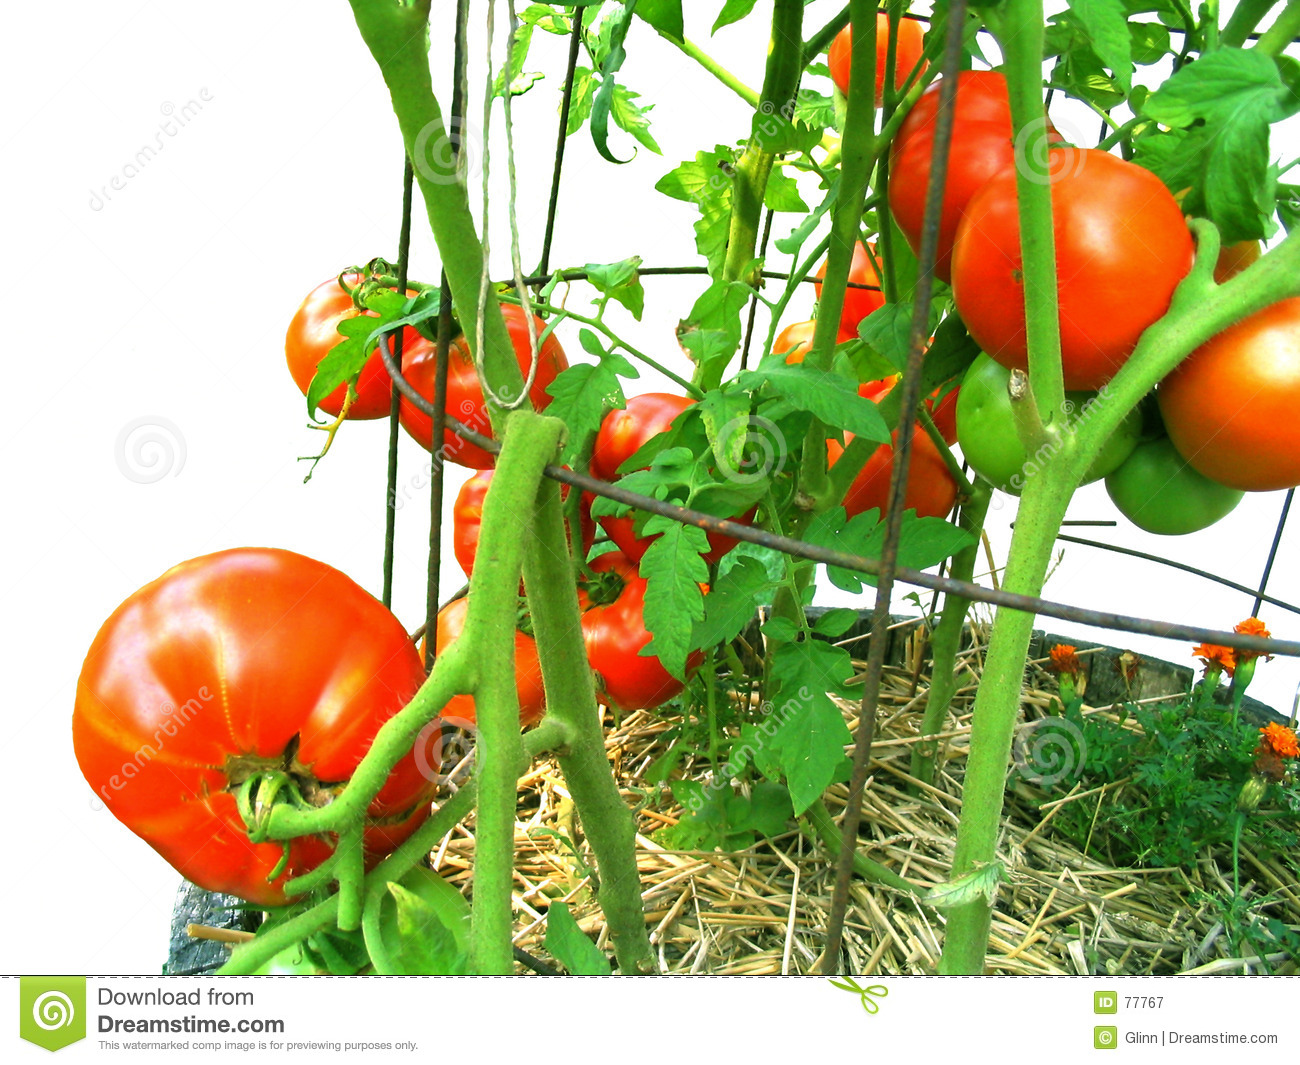 Grown home ripened tomatoes vine